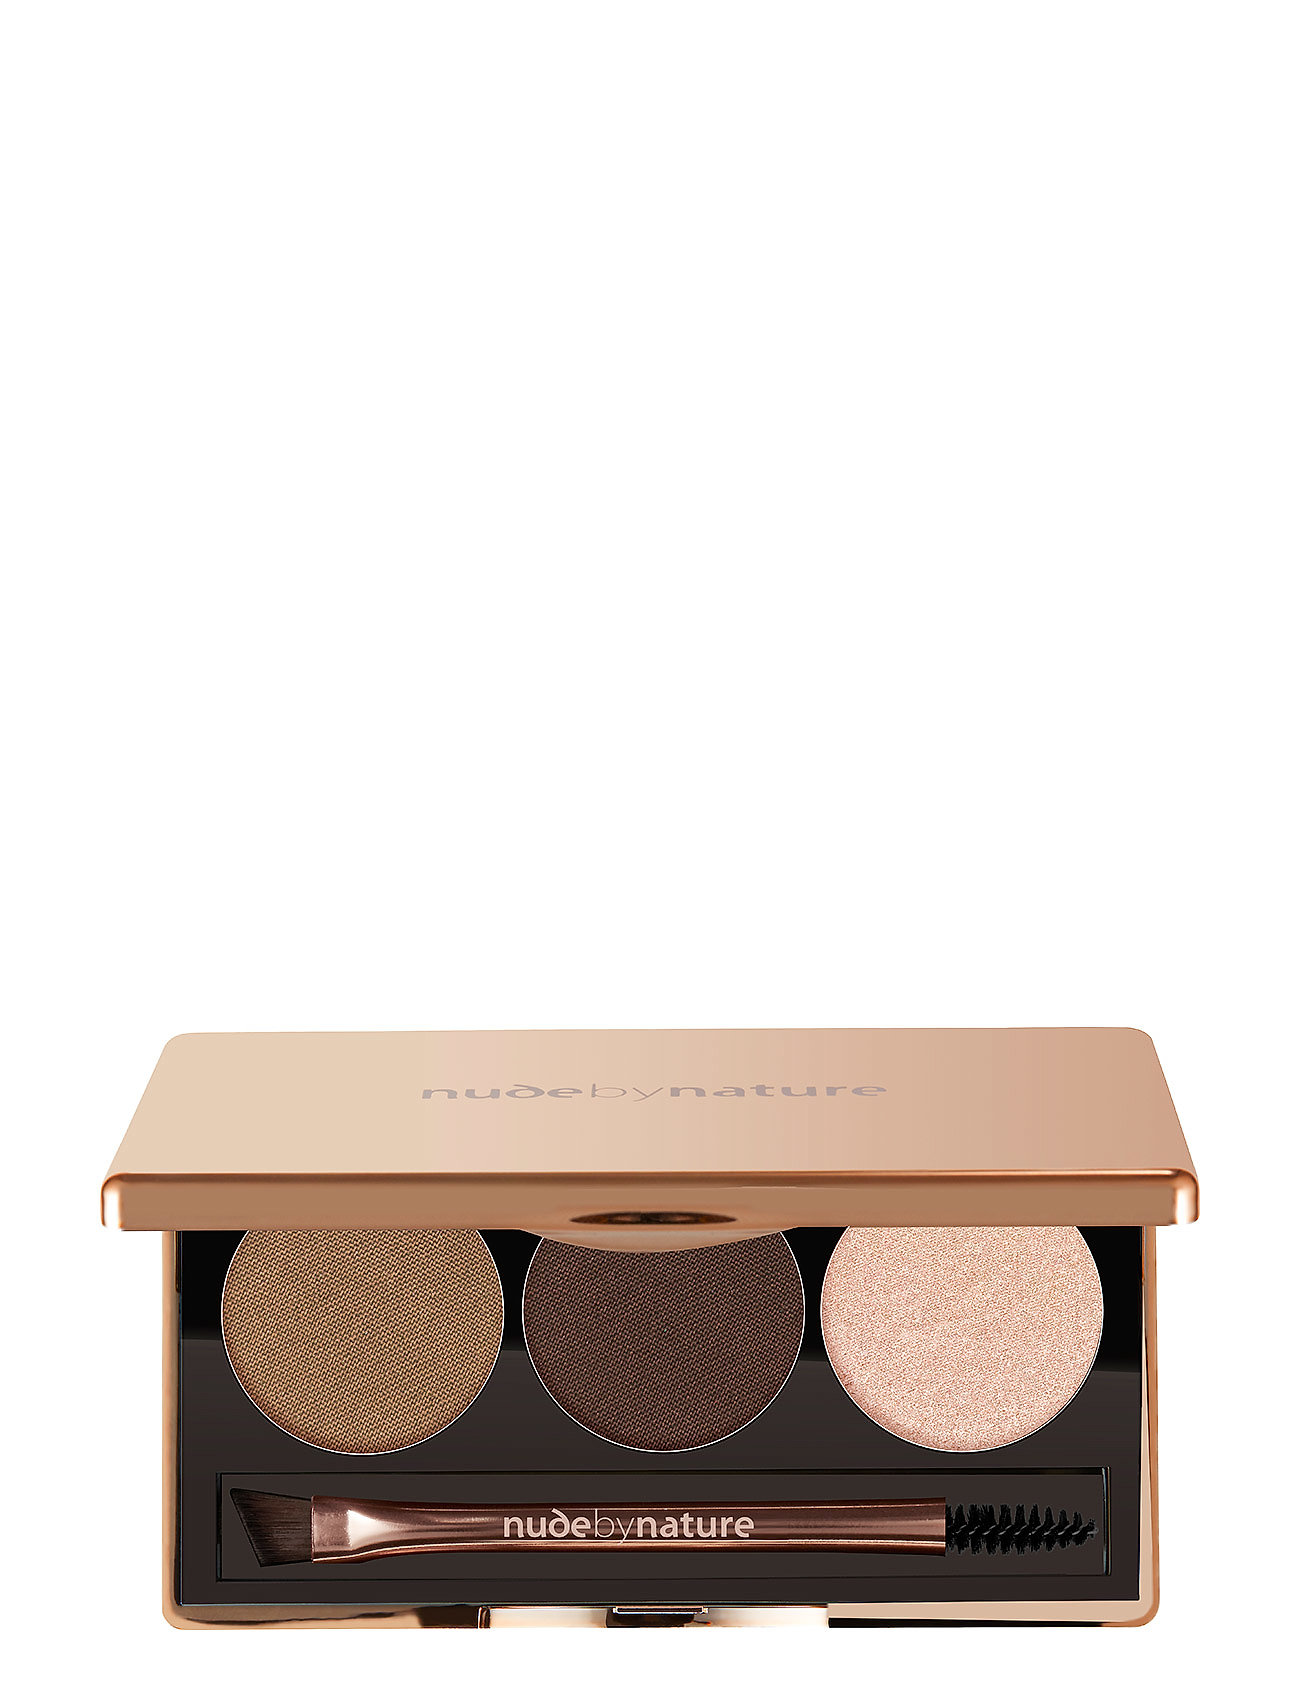 Nude by Nature DEFINITION BROW PALETTE PRECISION BROW PALETTE 02 BROWN - 02 BROWN